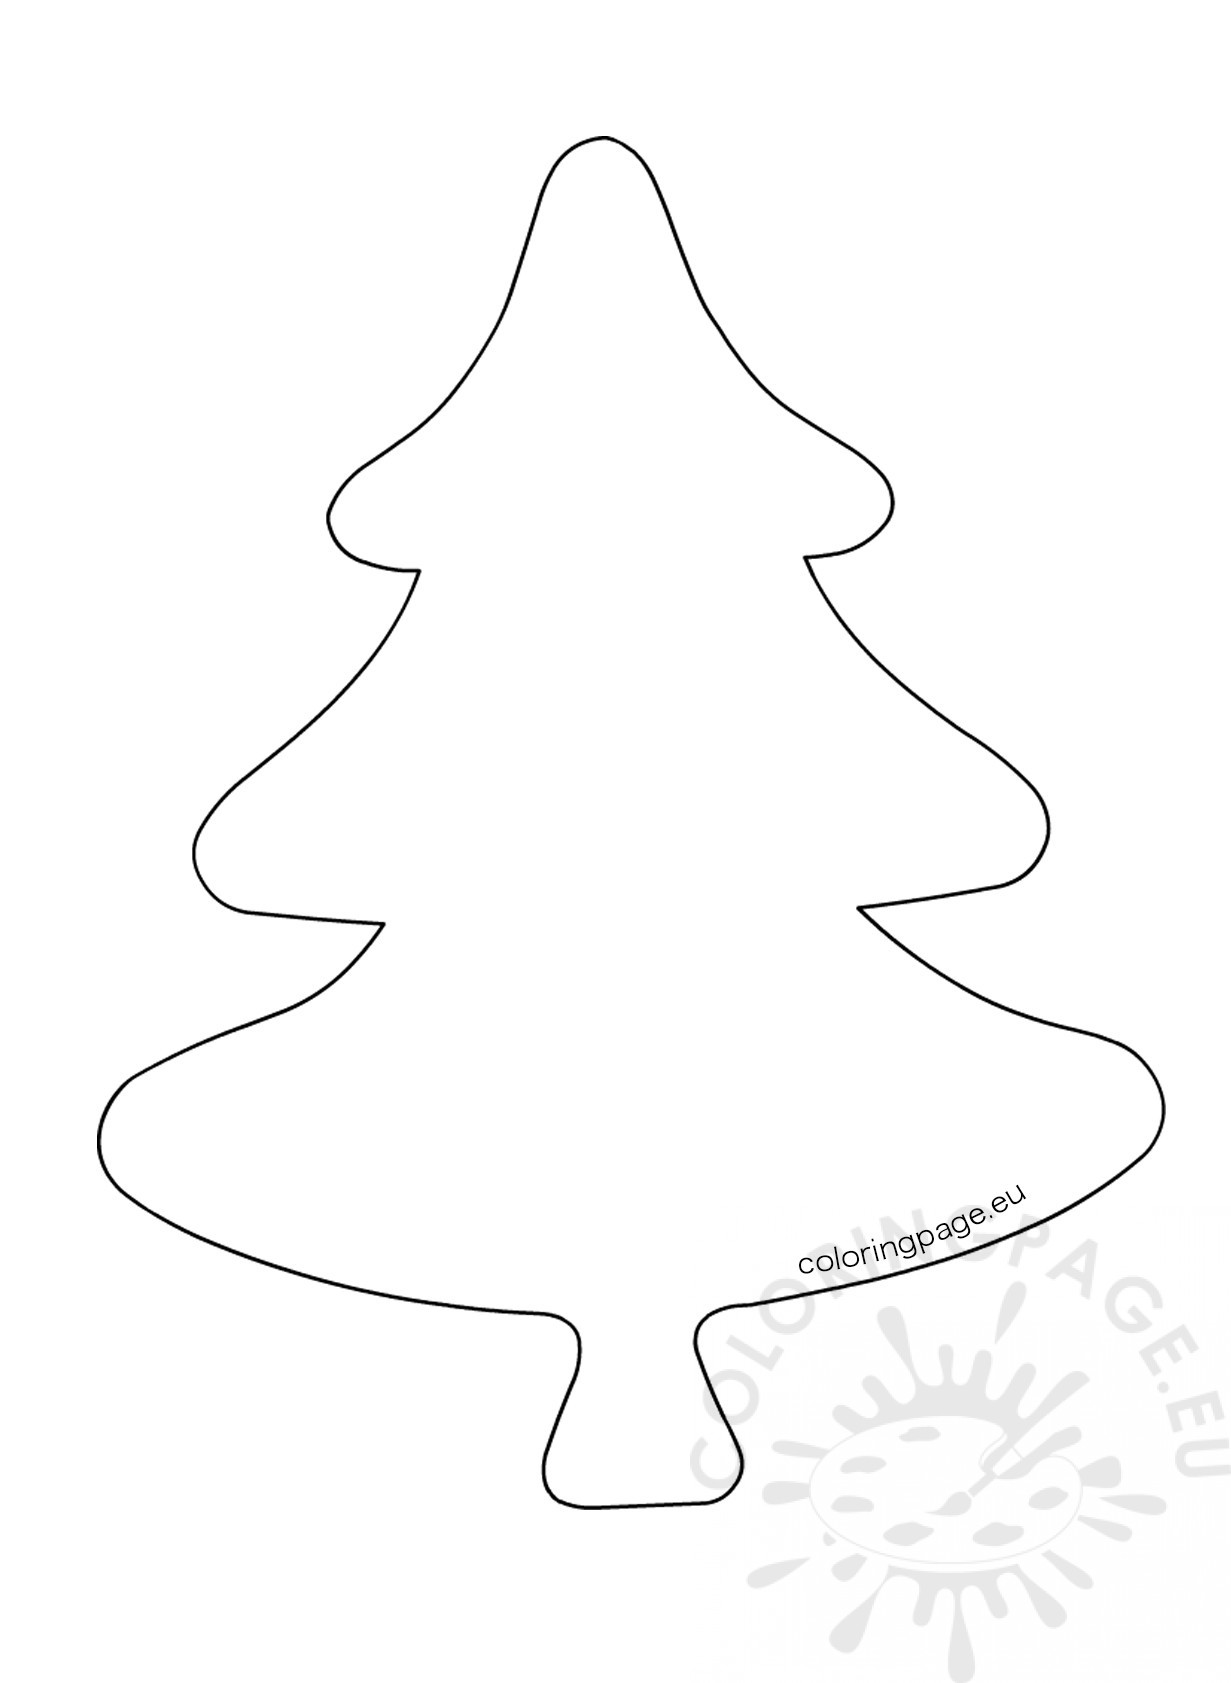 Felt Christmas Tree Ornament Template – Coloring Page